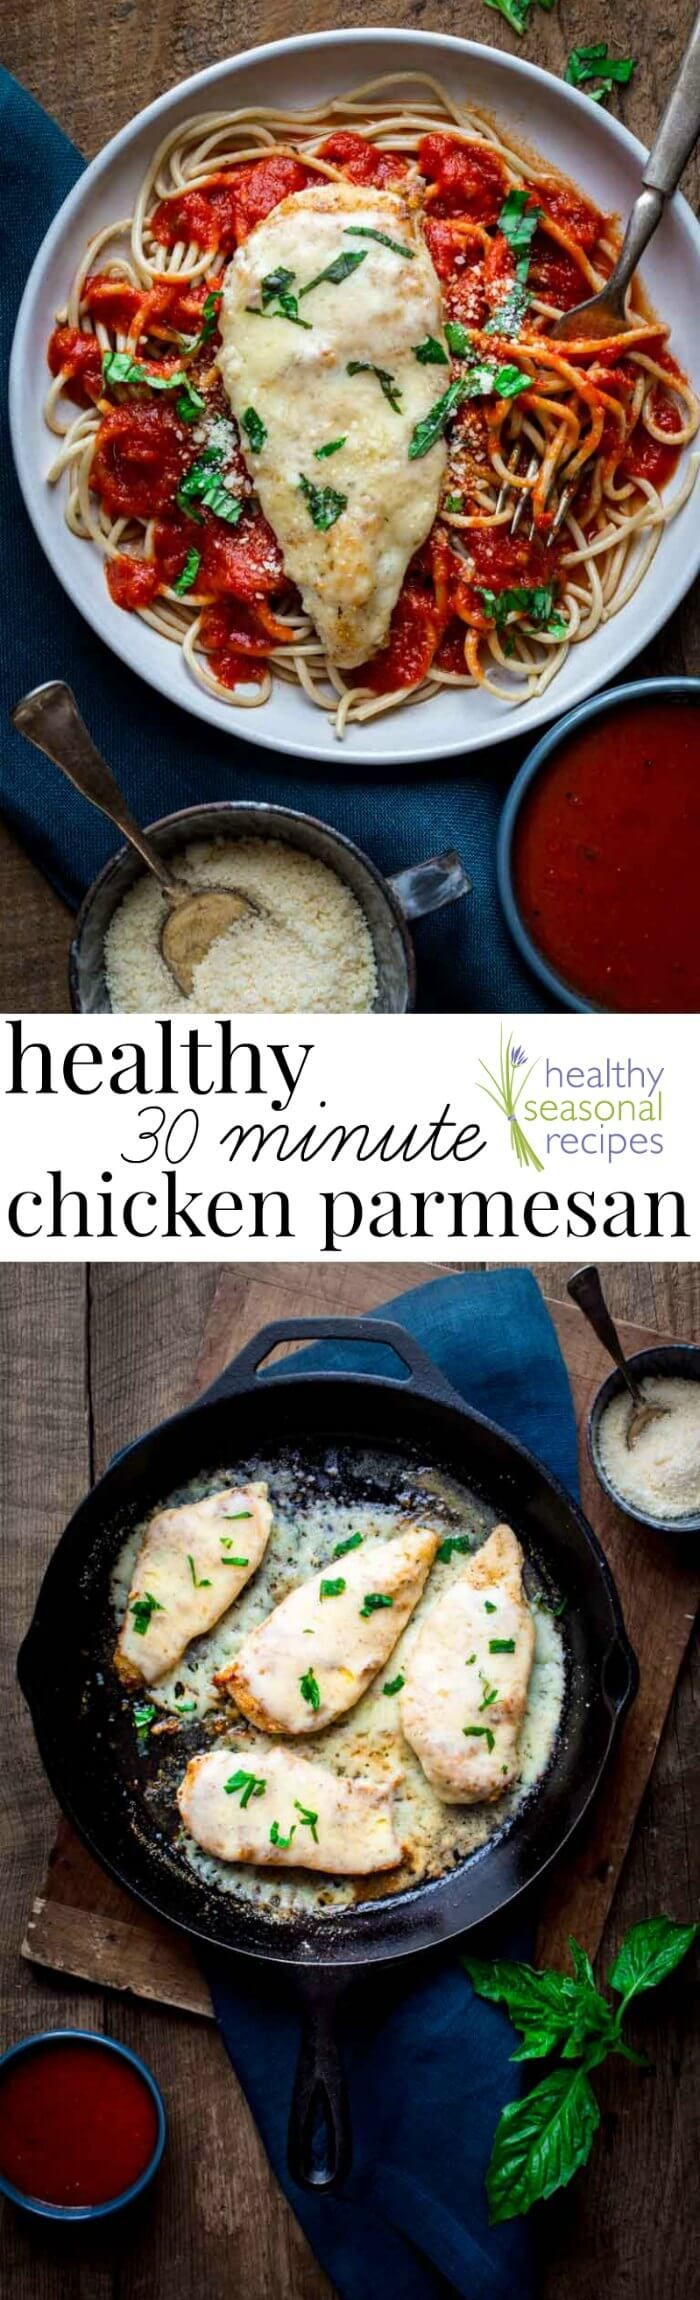 This Healthy 30 Minute Chicken Parmesan is a keeper! One… it's ready in 30 minutes making it a perfect weeknight dinner. Two… it's a healthier version of the traditional recipe and even has a gluten free option.